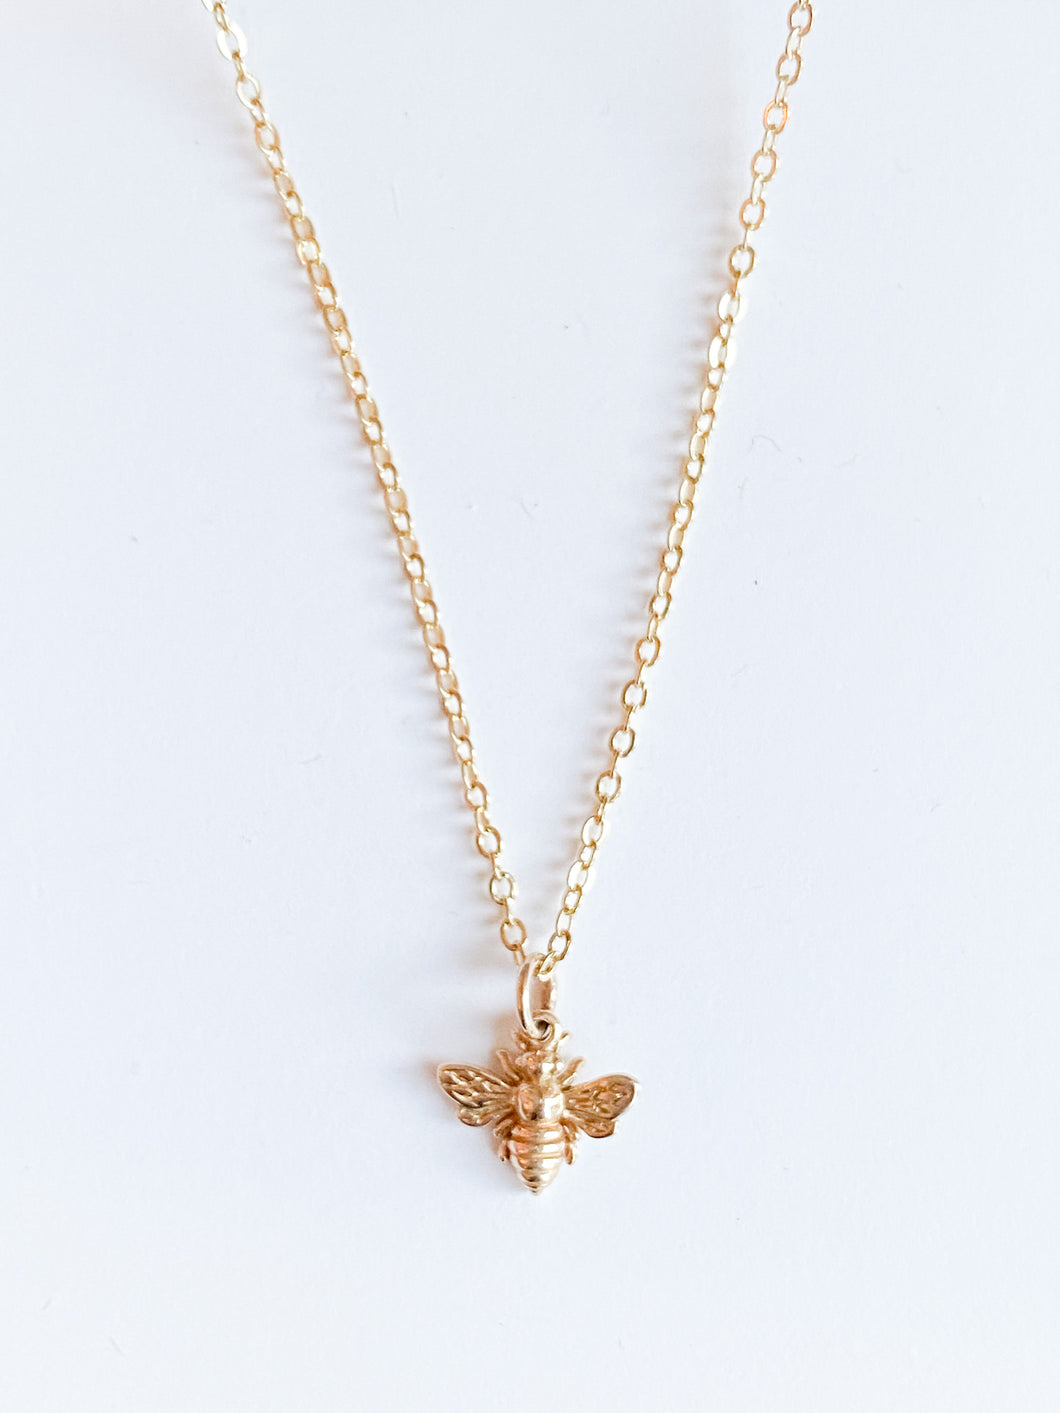 Honey Bee Necklace - Small